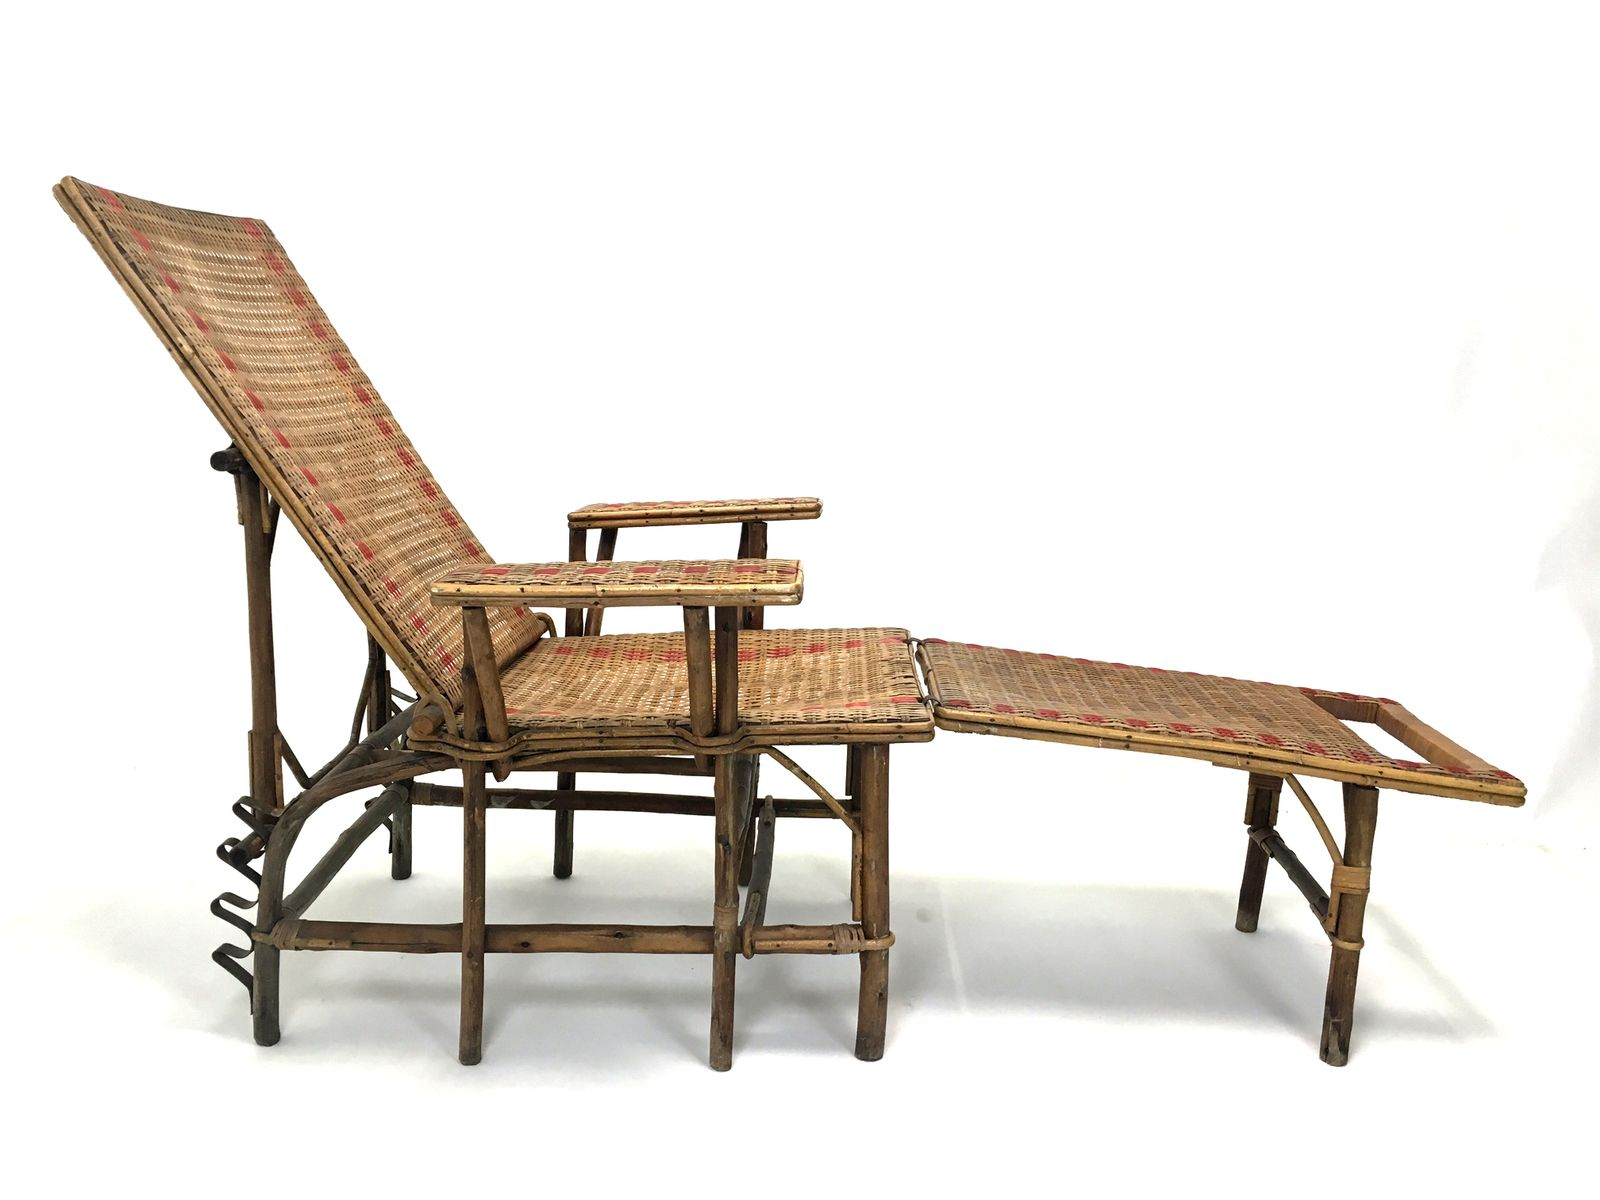 French wicker and bamboo chaise longue with footrest for Chaise longue for sale ireland